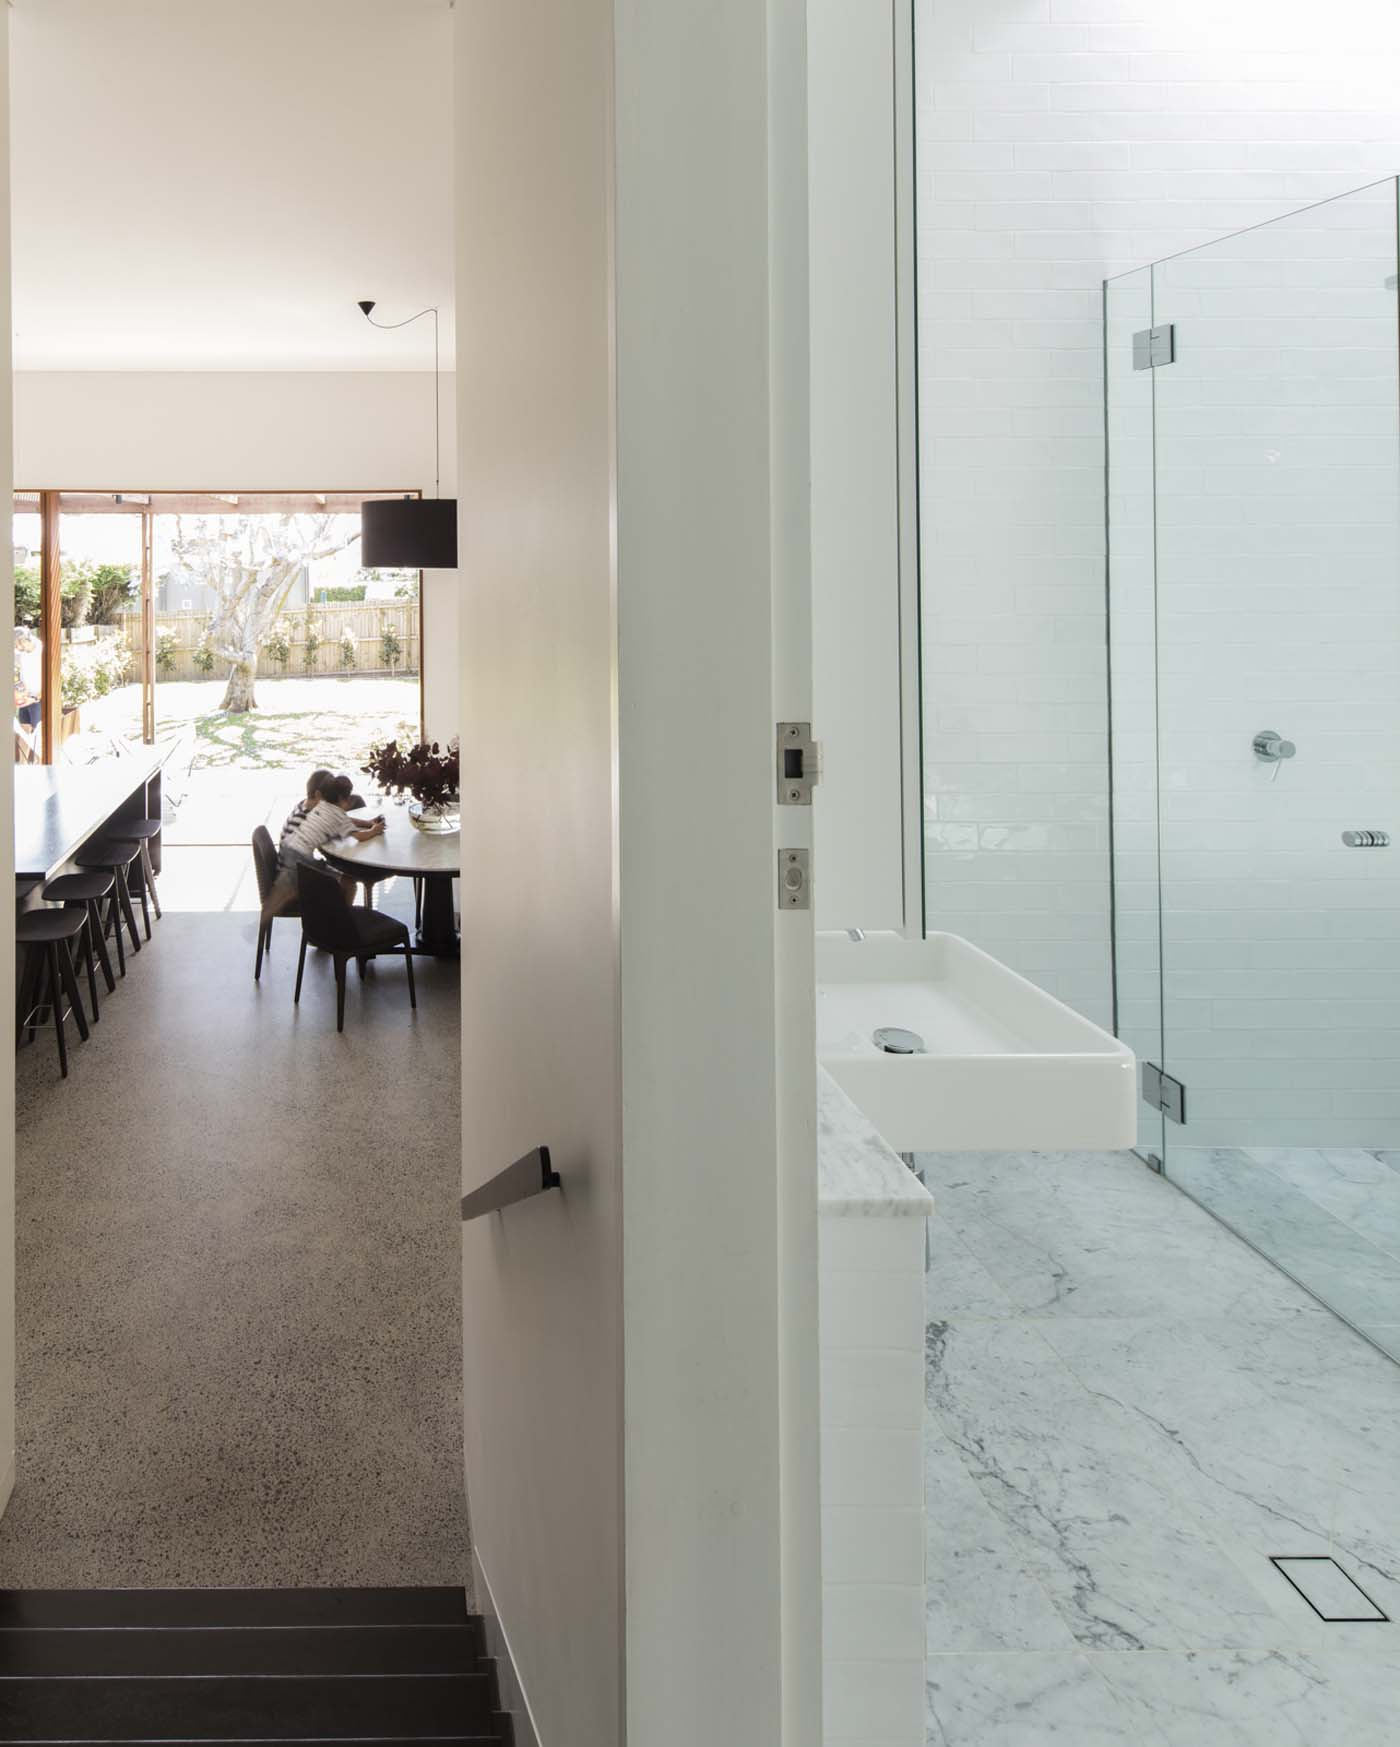 Sung Dobson house by Sam Crawford Architects, Sydney. Link between old and new.